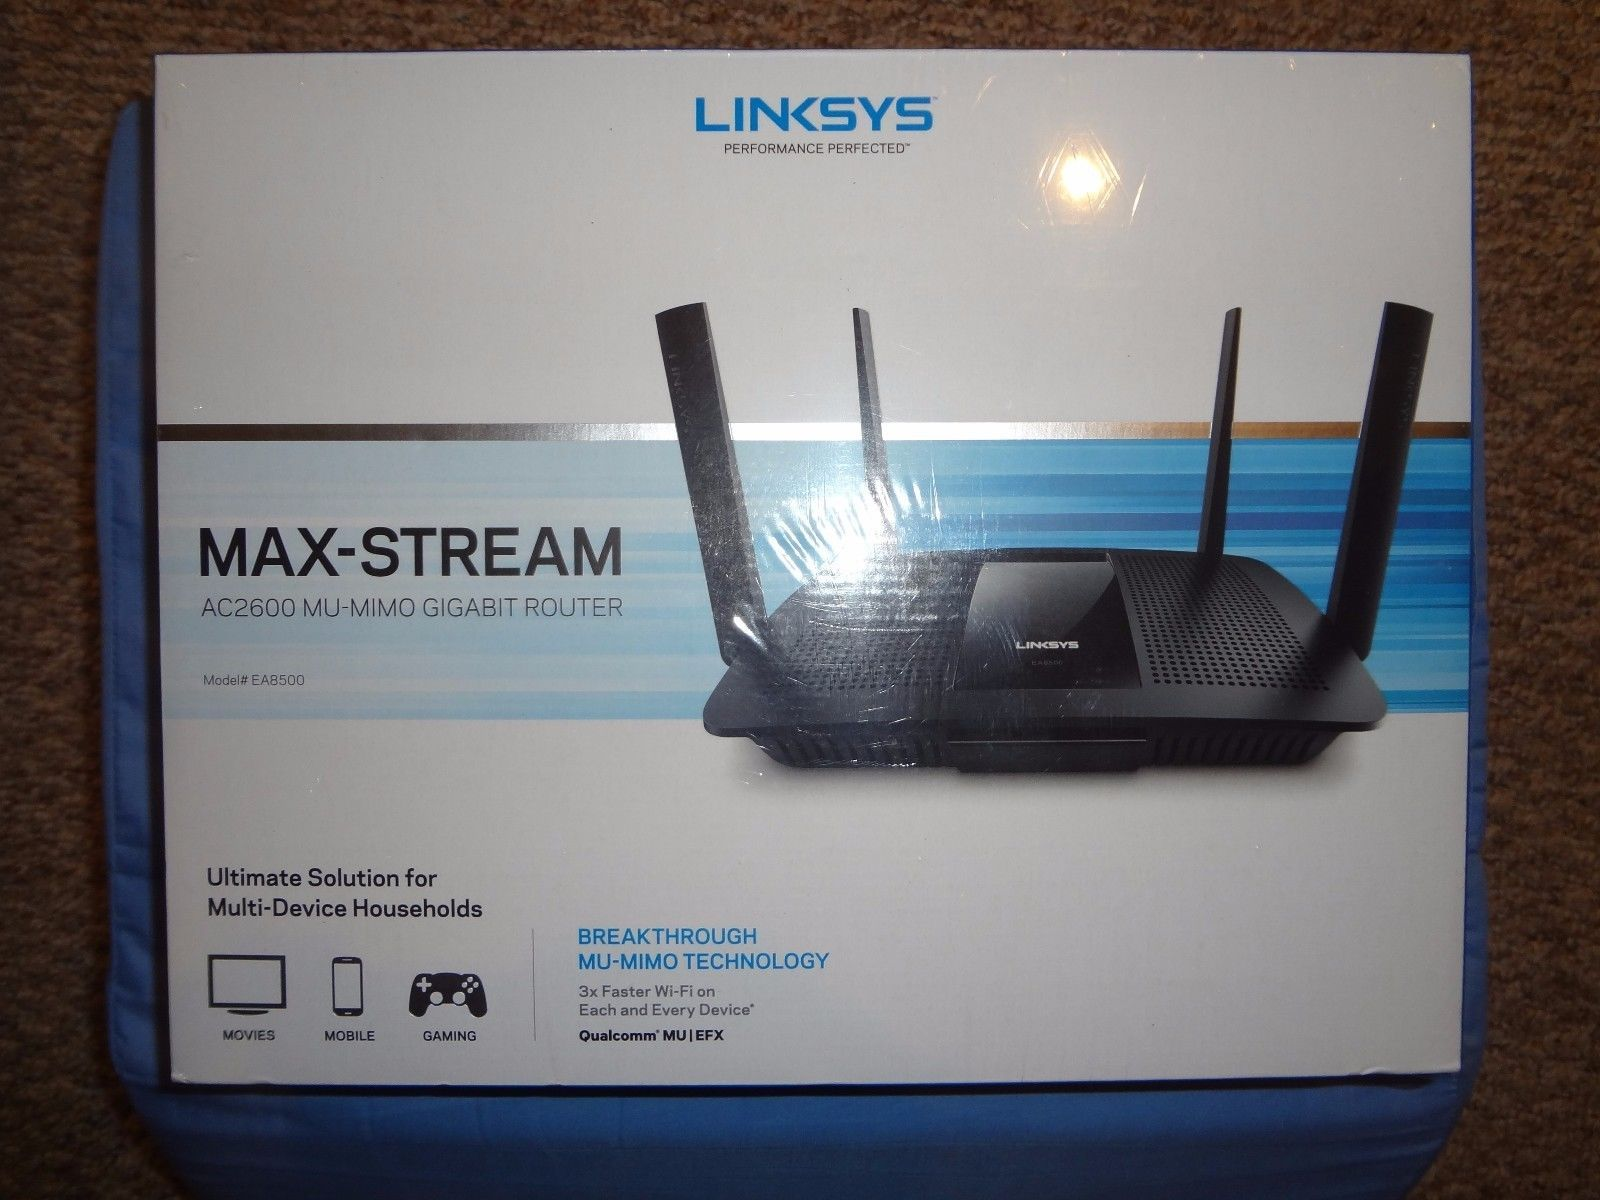 Linksys ea8500 max stream ac2600 mu mimo gigabit router 3x faster linksys ea8500 max stream ac2600 mu mimo gigabit router 3x faster brand new greentooth Gallery